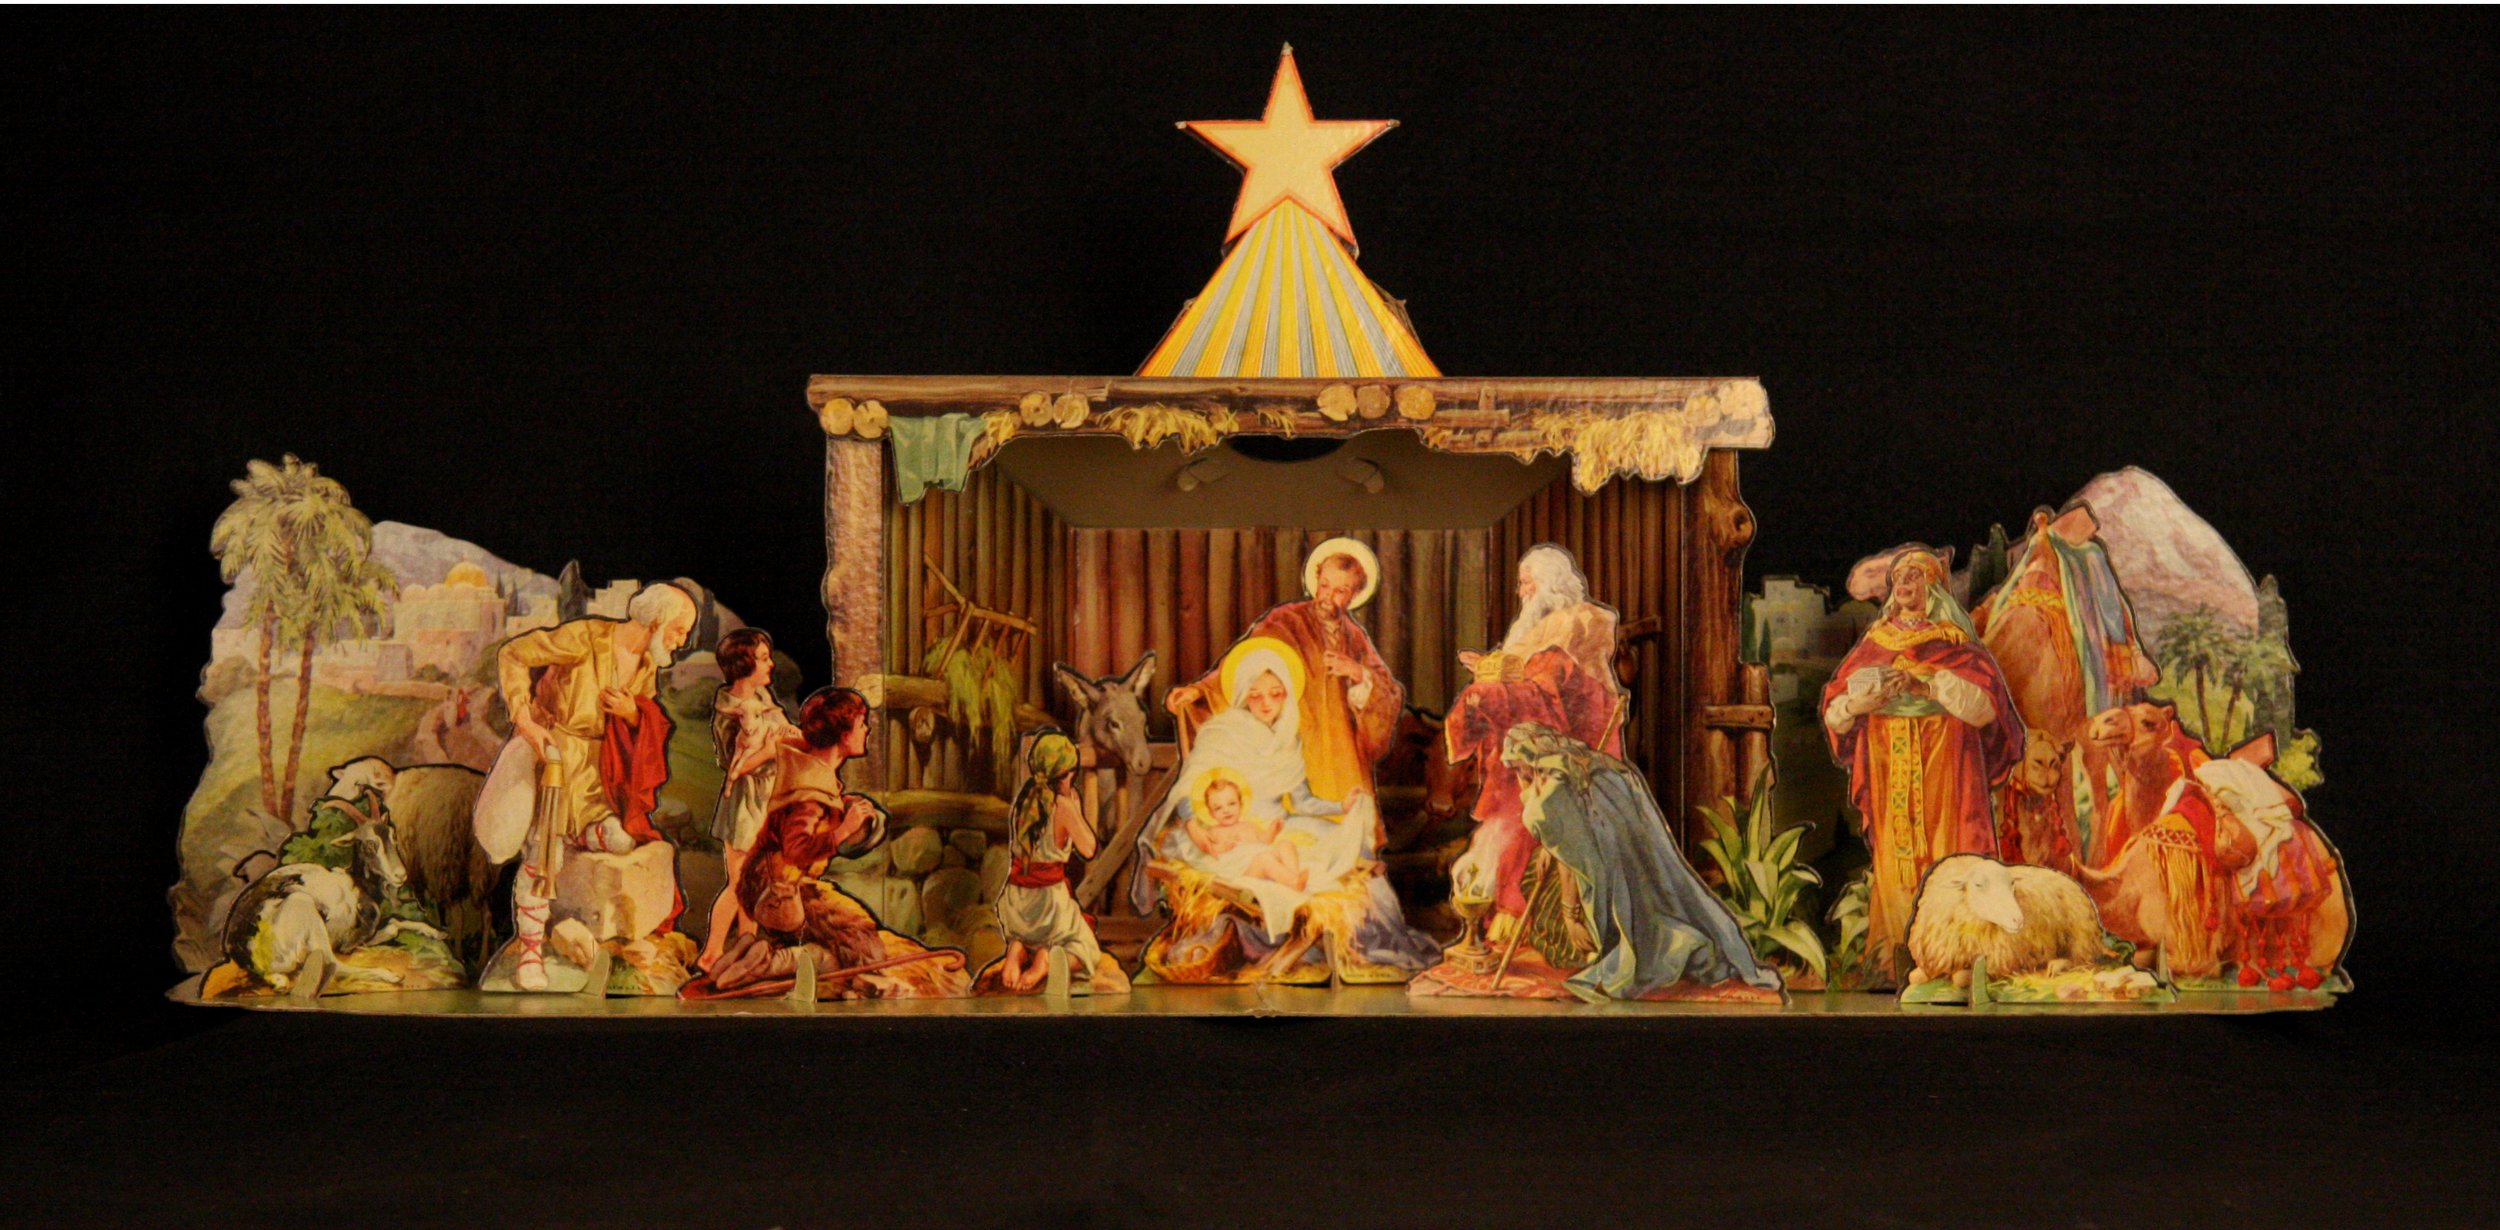 """Christmas Manger Set,"" USA, early 1940s. This cardboard tabletop Nativity was published by Concordia Publishing House from illustrations first produced by artist George Hinke. A base is provided with special tabs to hold the 17 lithographed figures upright; each tab is carefully labeled so that even a child can assemble it. Hinke was born in 1883 in Berlin, Germany, where he trained as a painter. He immigrated to the United States in 1923. Hinke specialized in religious subjects and nostalgic scenes of small-town American life. He is best remembered for his illustrations of children's books such as  Joseph's Story , which tells the Nativity story from Joseph's point of view, and  Jolly Old Santa Claus . Collection of Glencairn Museum."